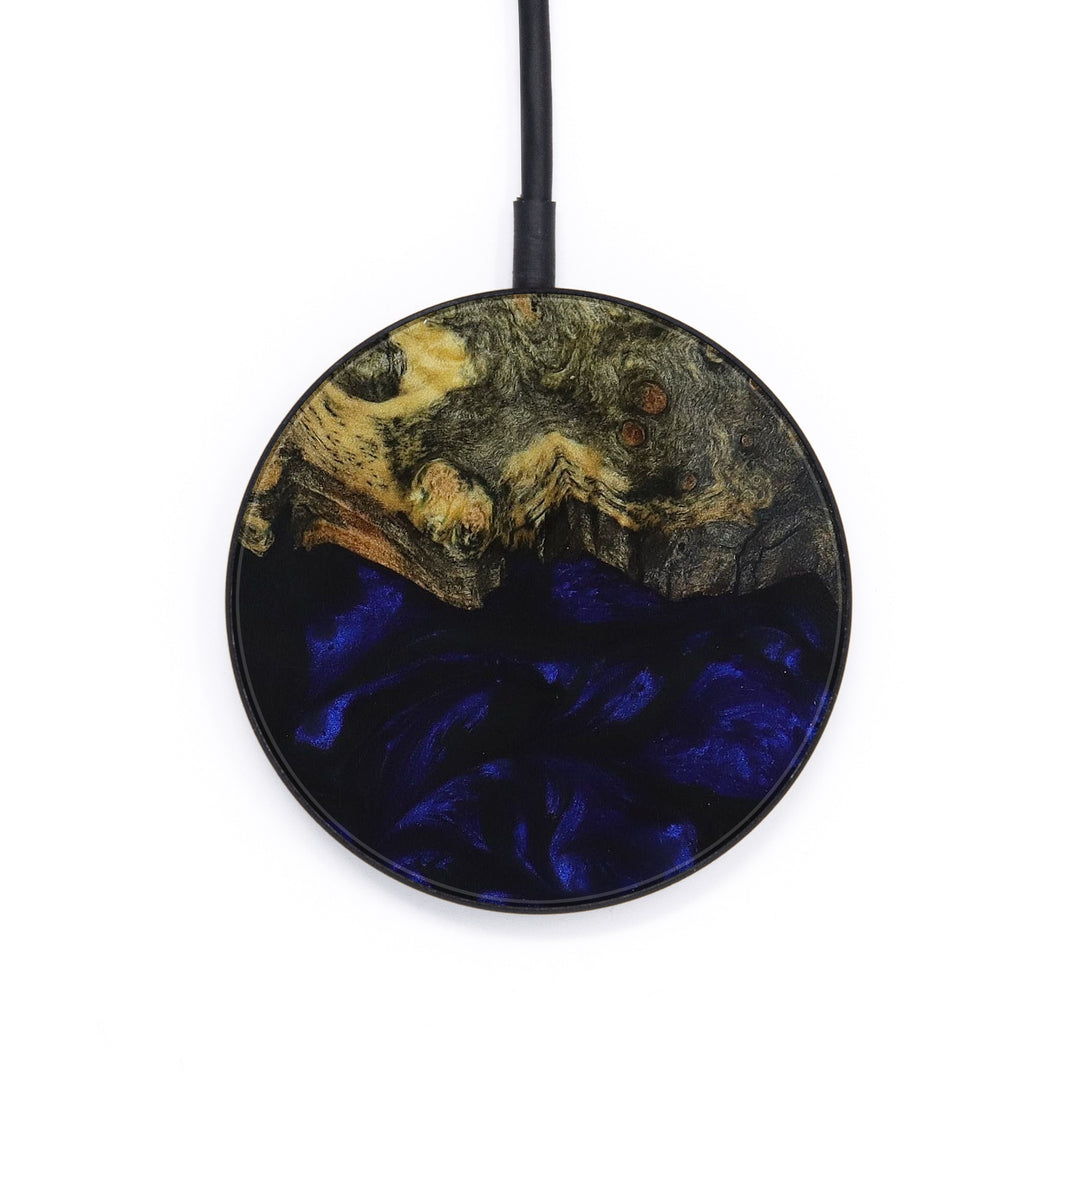 Circle Wood+Resin Wireless Charger - Michell (Dark Blue, 393423)